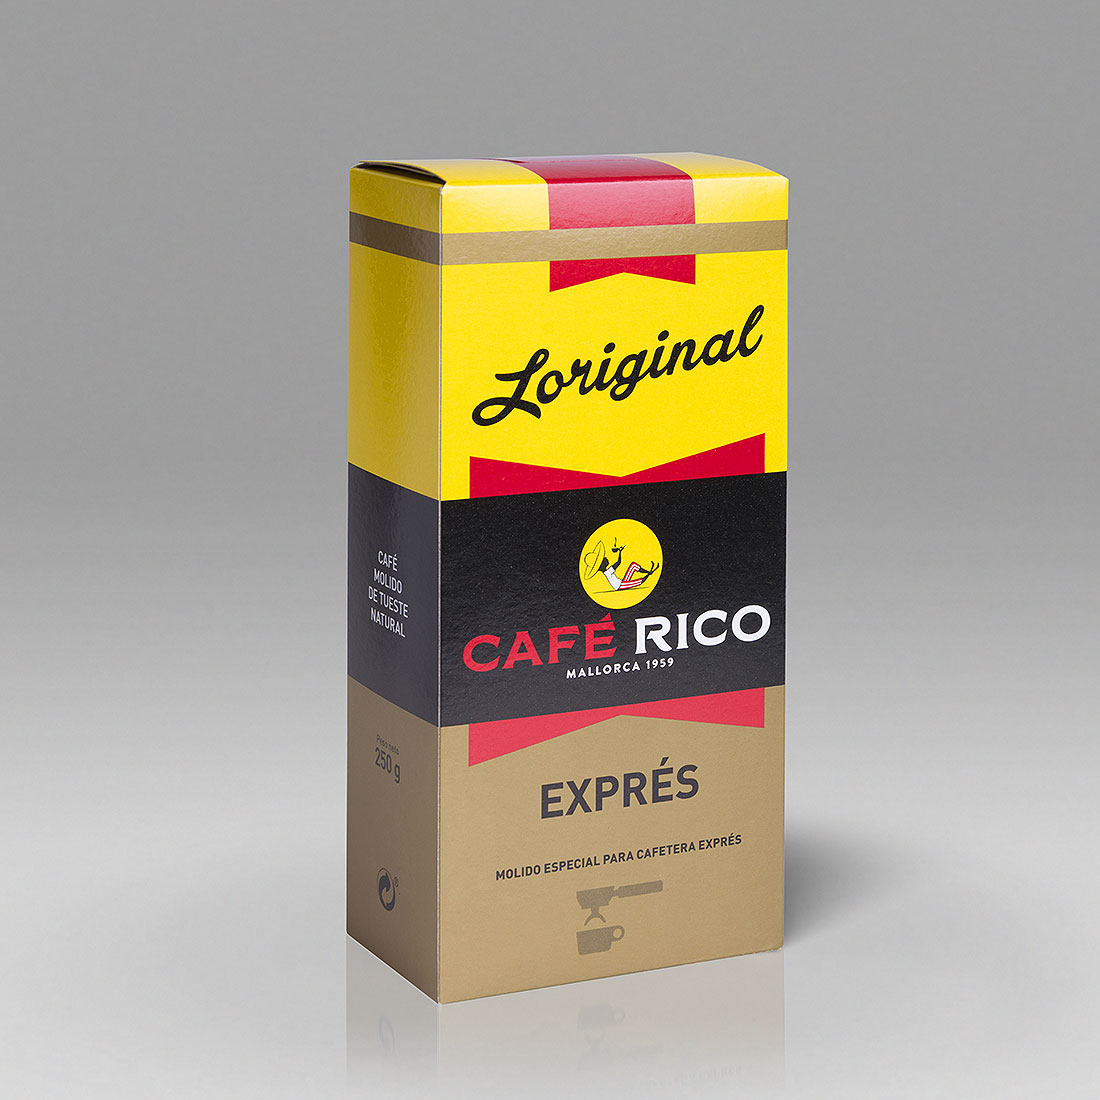 Cafe-Rico-Loriginal-Express